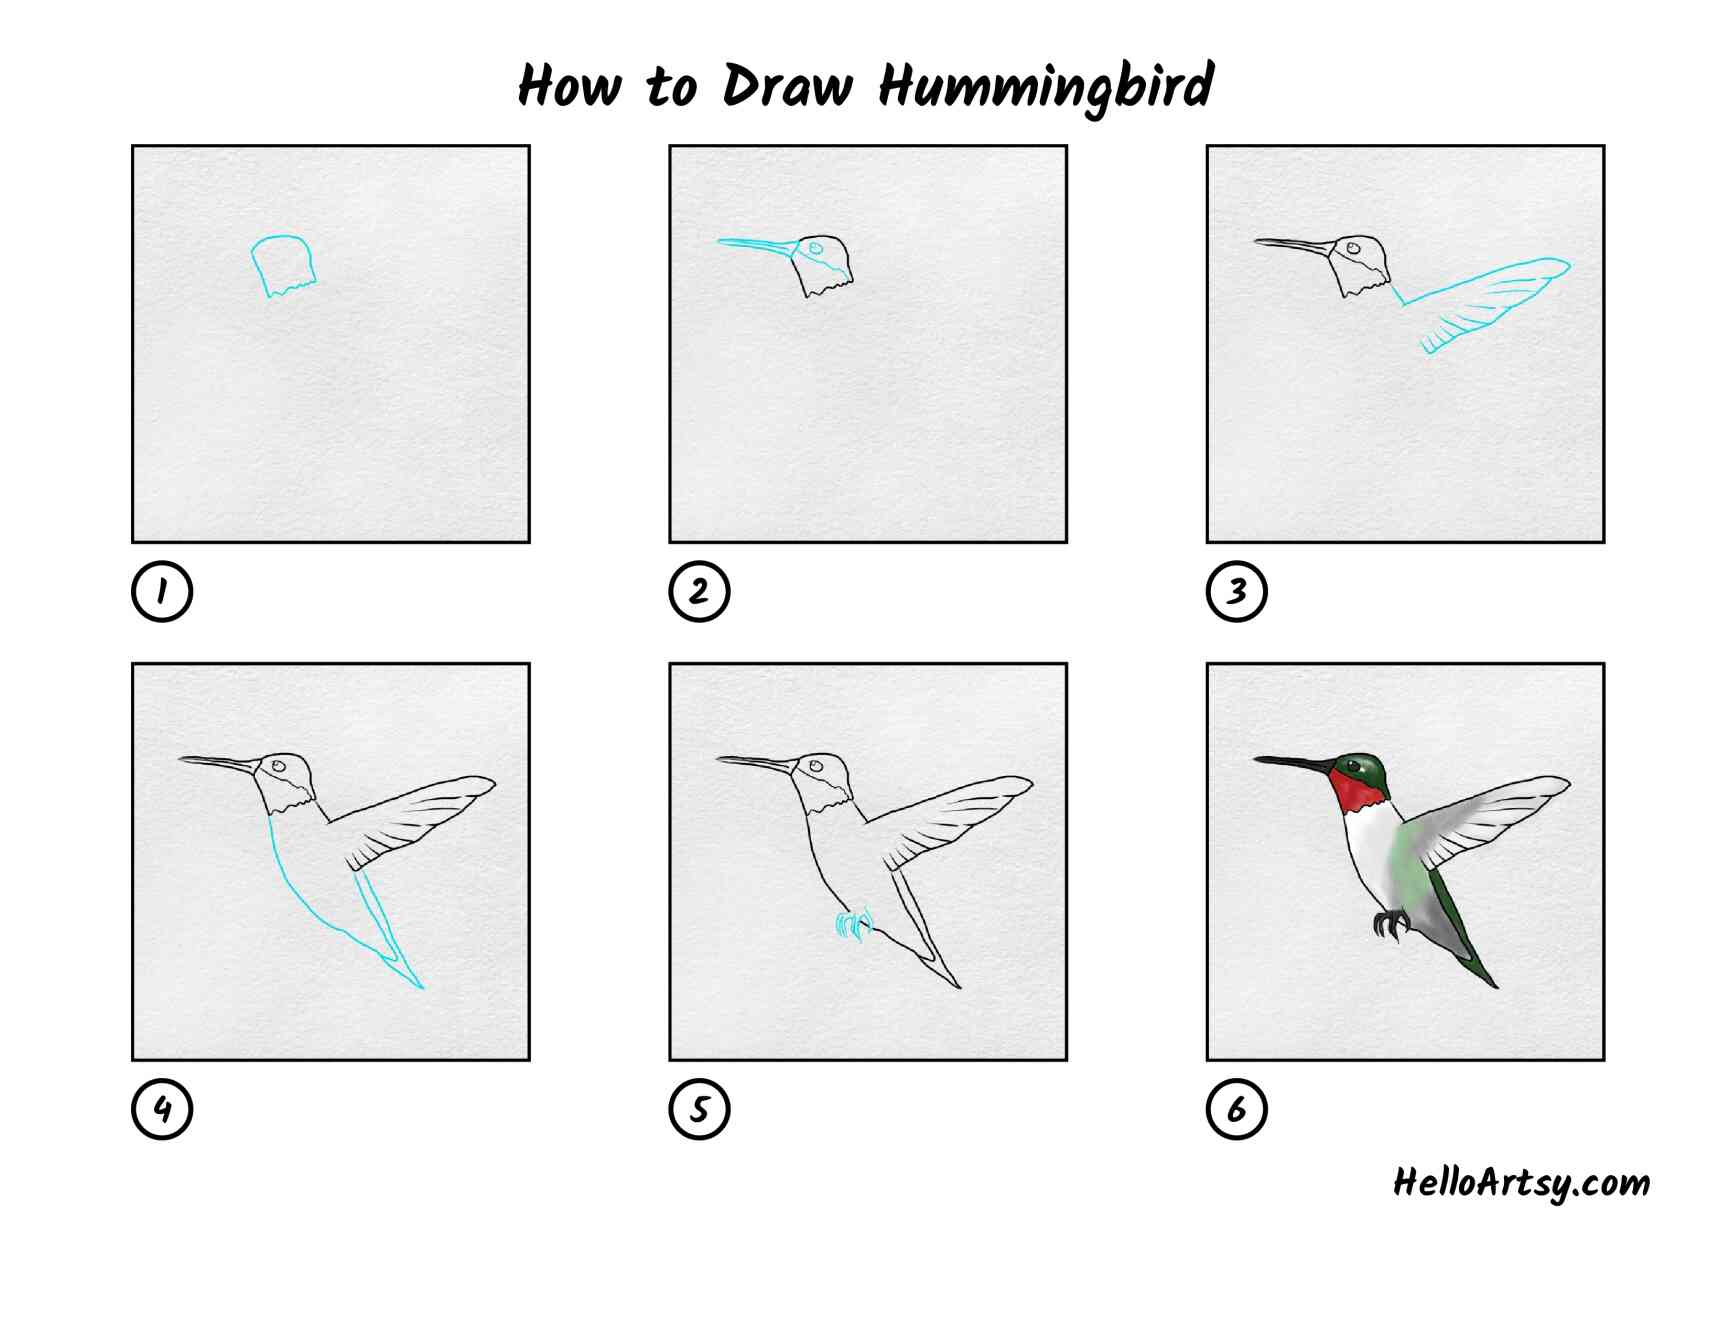 How To Draw Hummingbird: All Steps